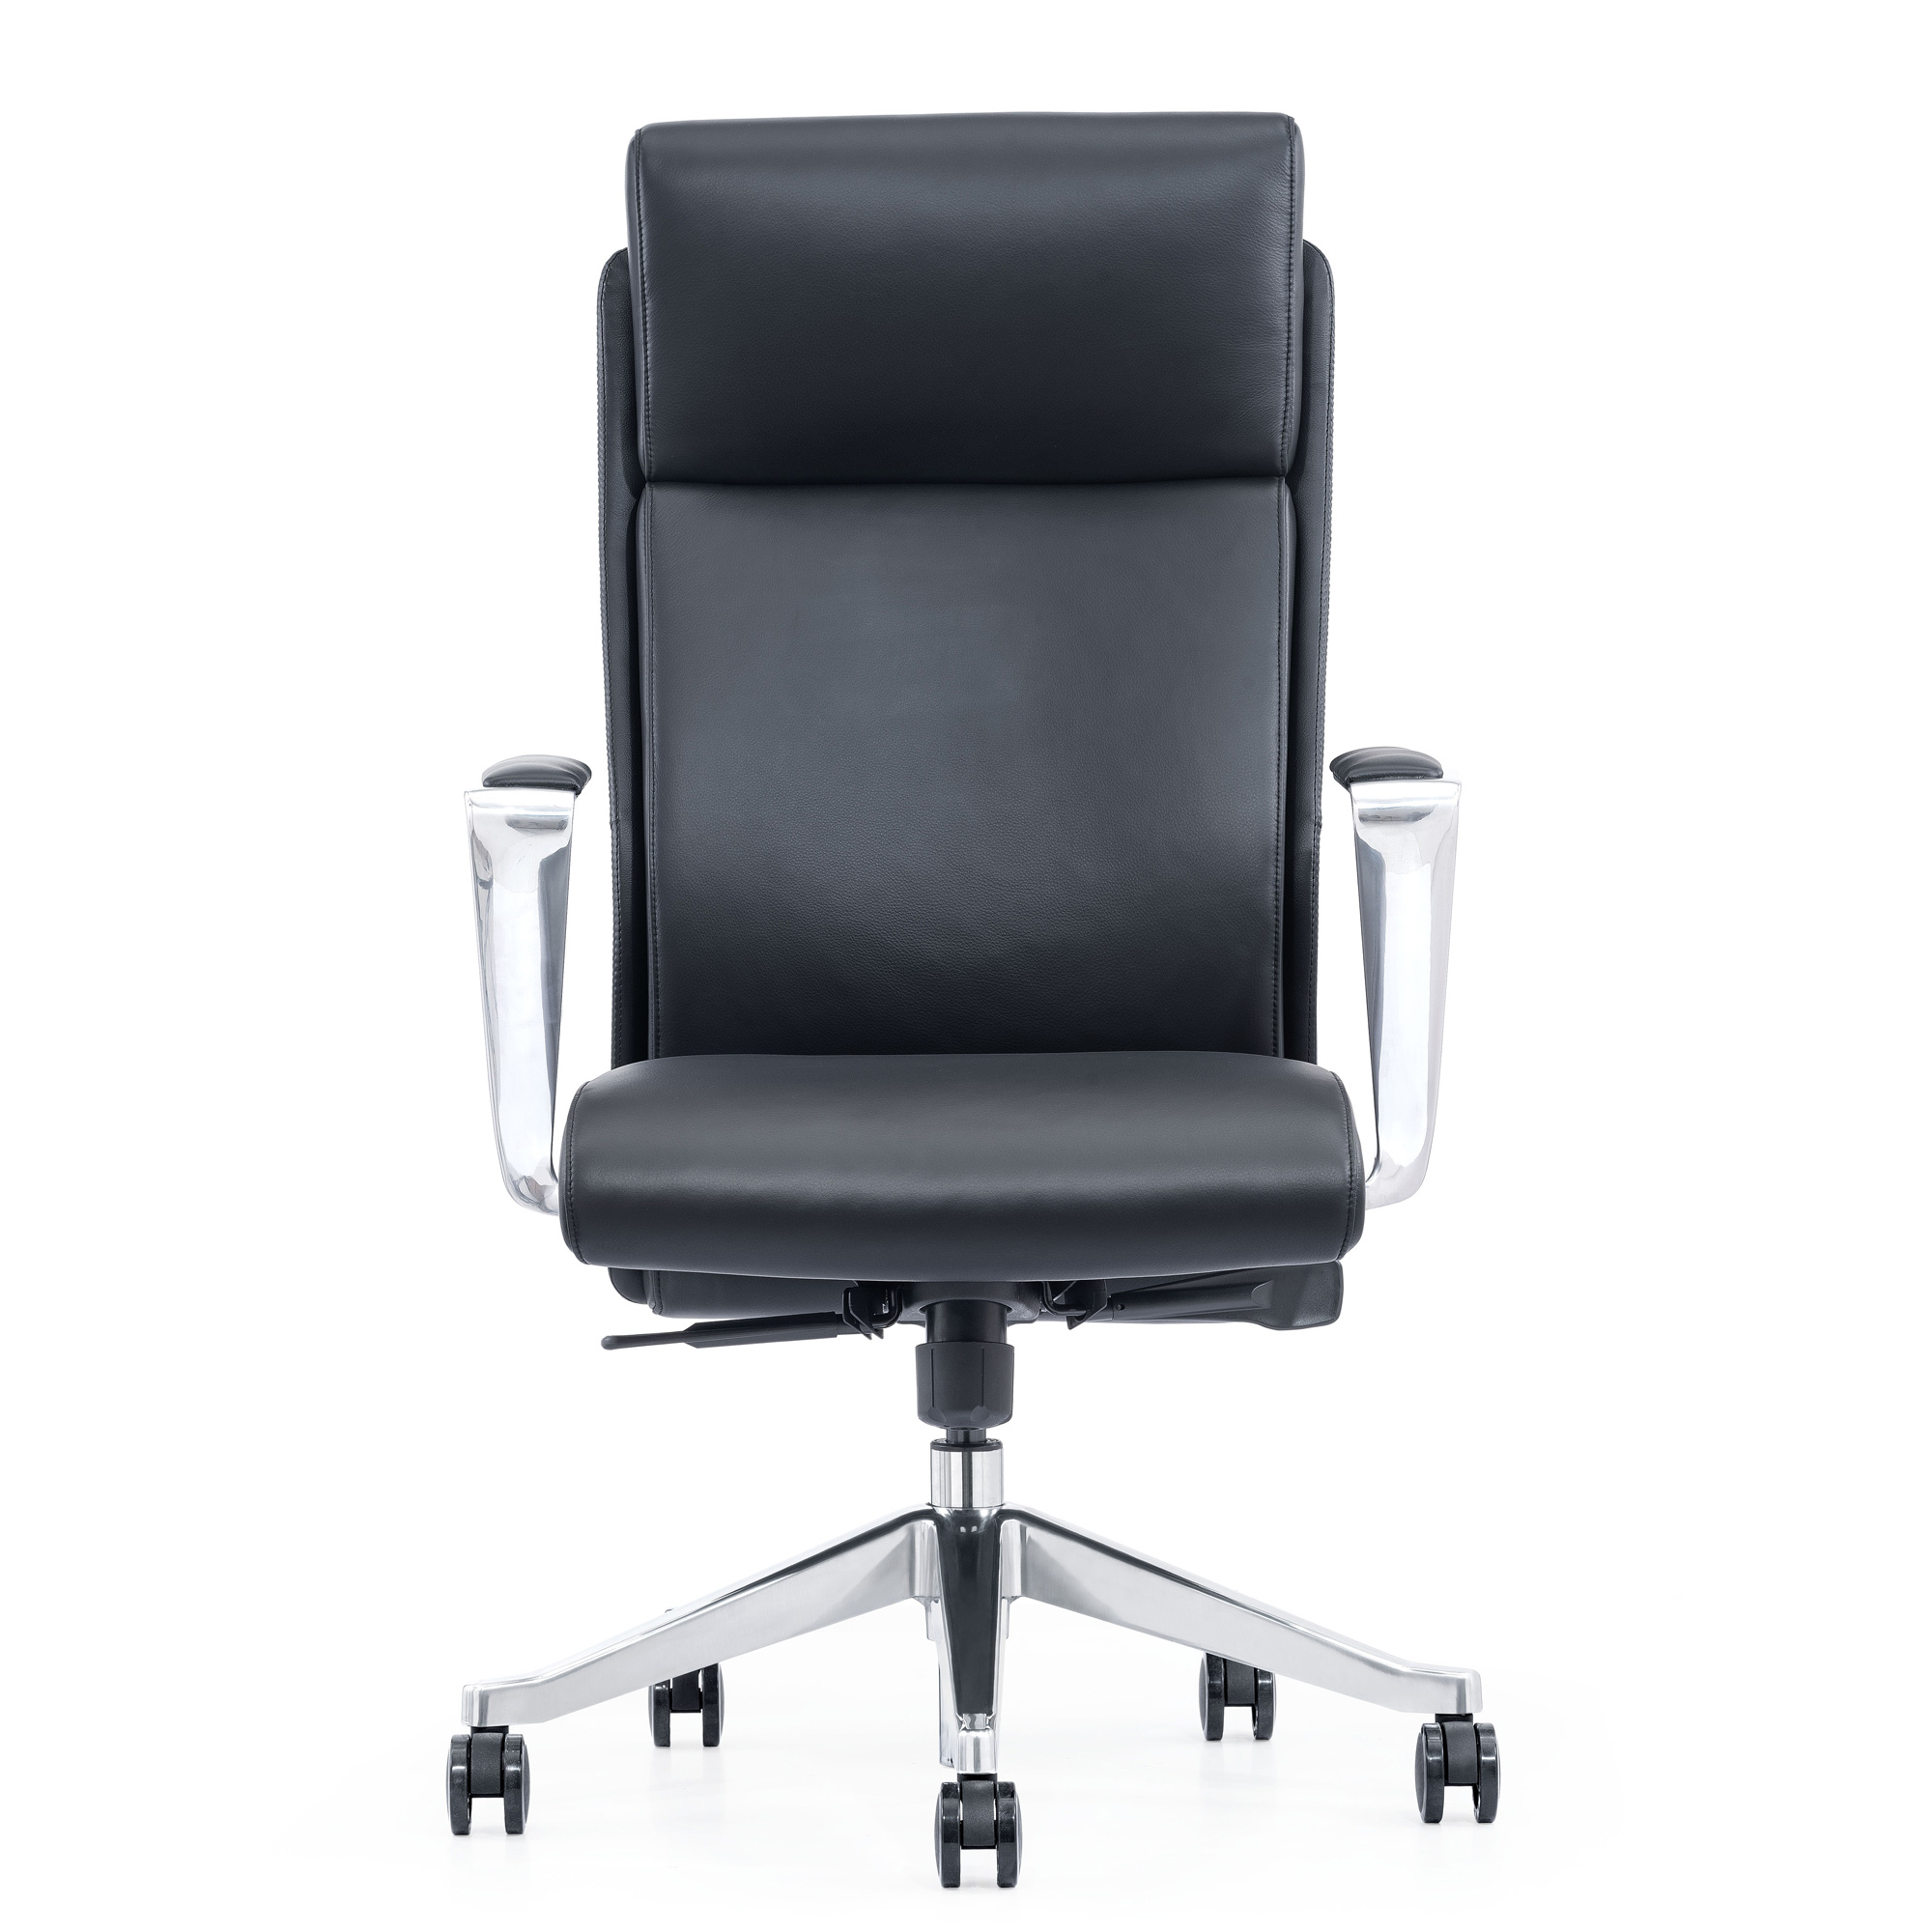 LOD68, Black leather high-back chair